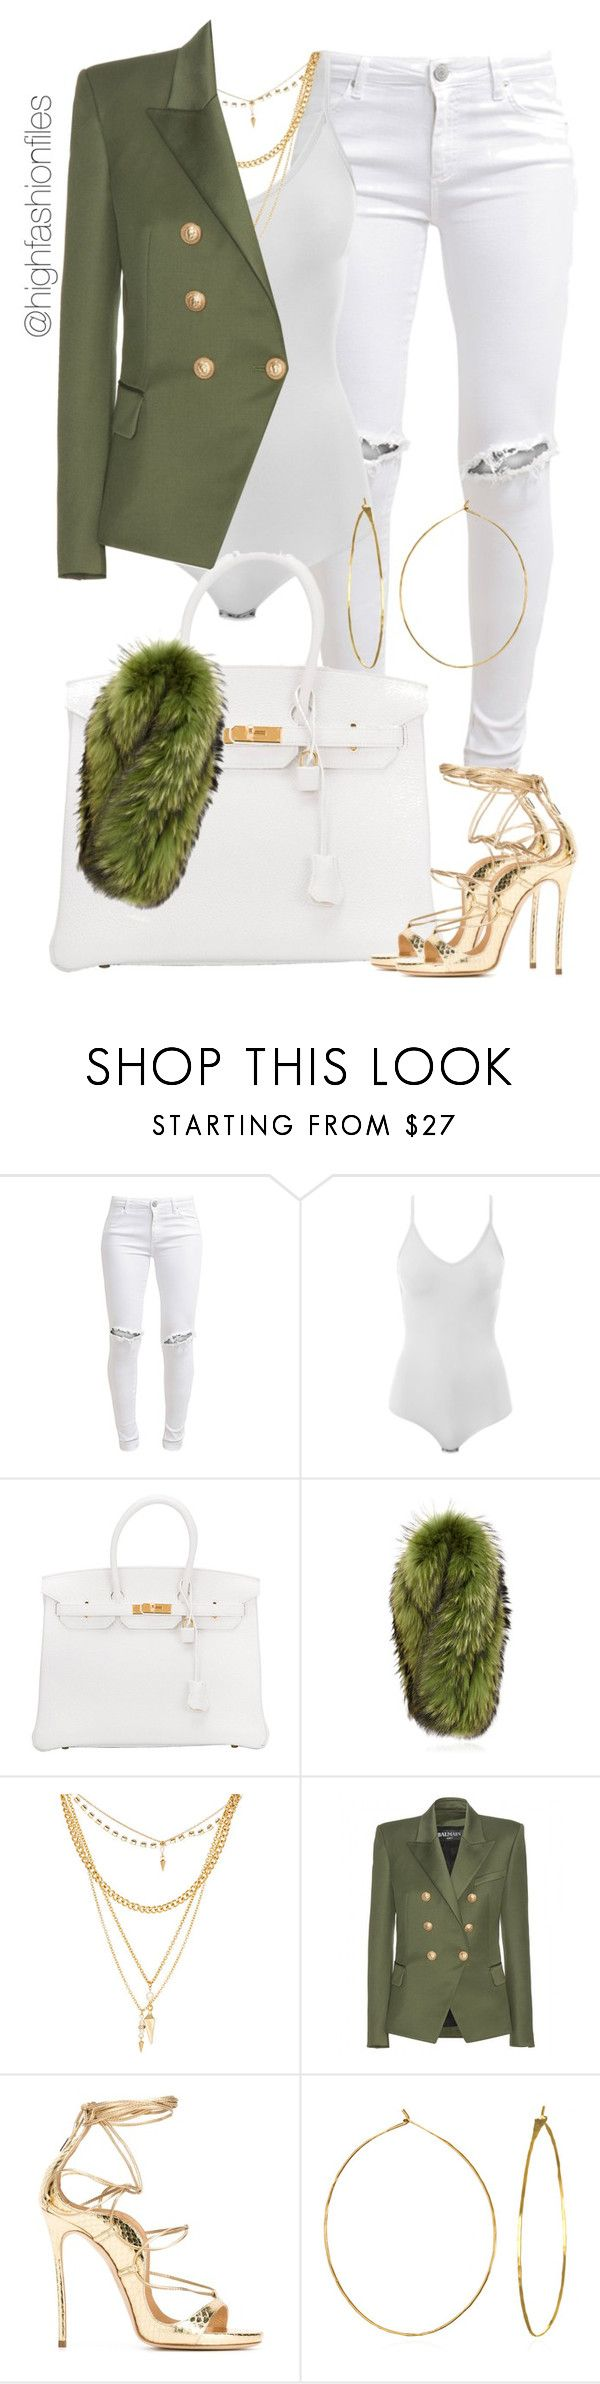 """On the Move"" by highfashionfiles ❤ liked on Polyvore featuring FiveUnits, Intimissimi, Hermès, Charlotte Simone, Ettika, Balmain, Dsquared2 and Phyllis + Rosie"